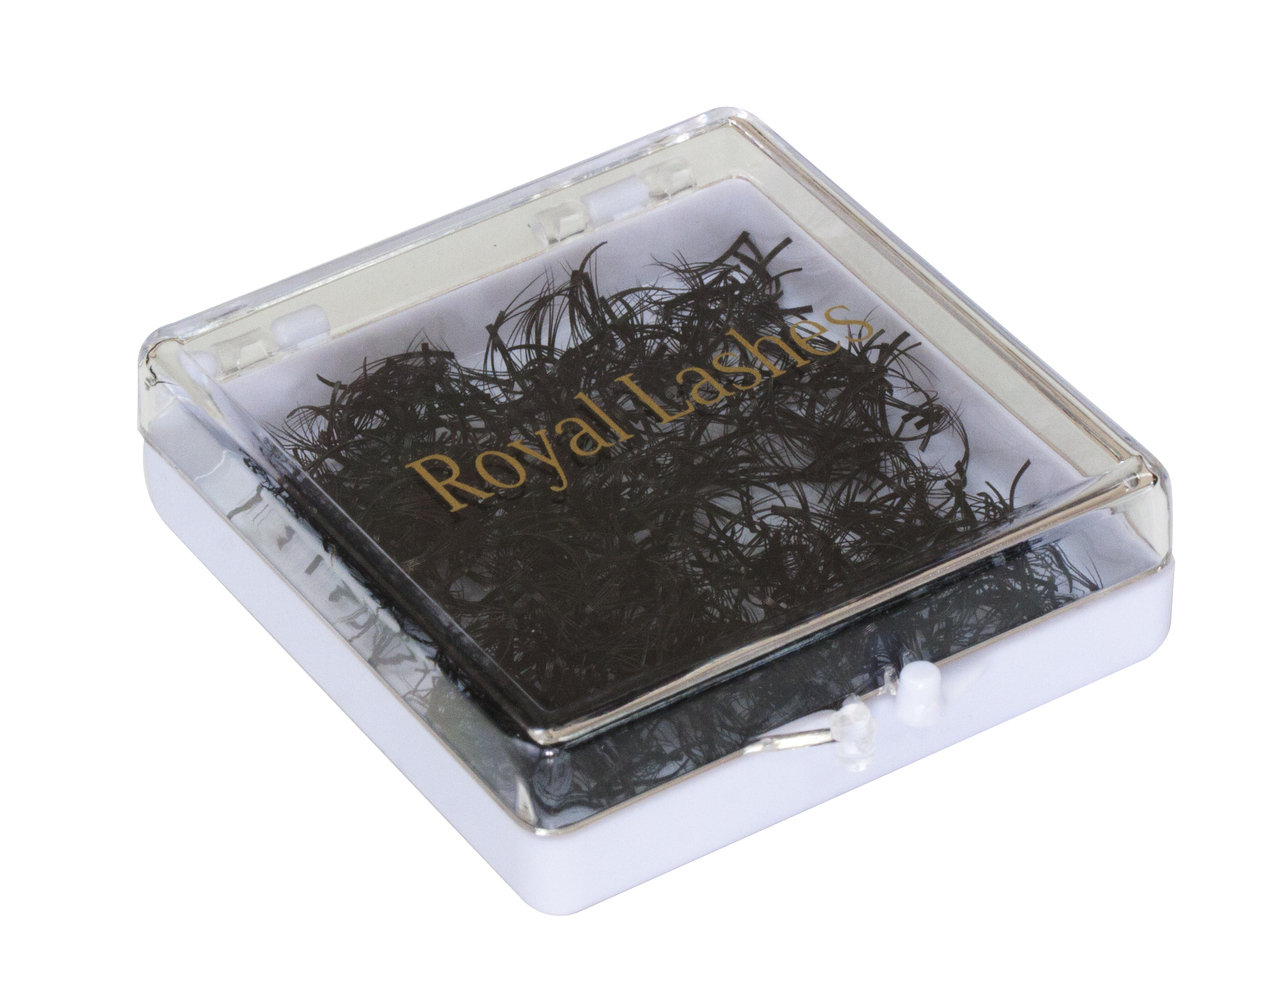 QL Royal Lashes 5 Strands, 1000 pcs (white box